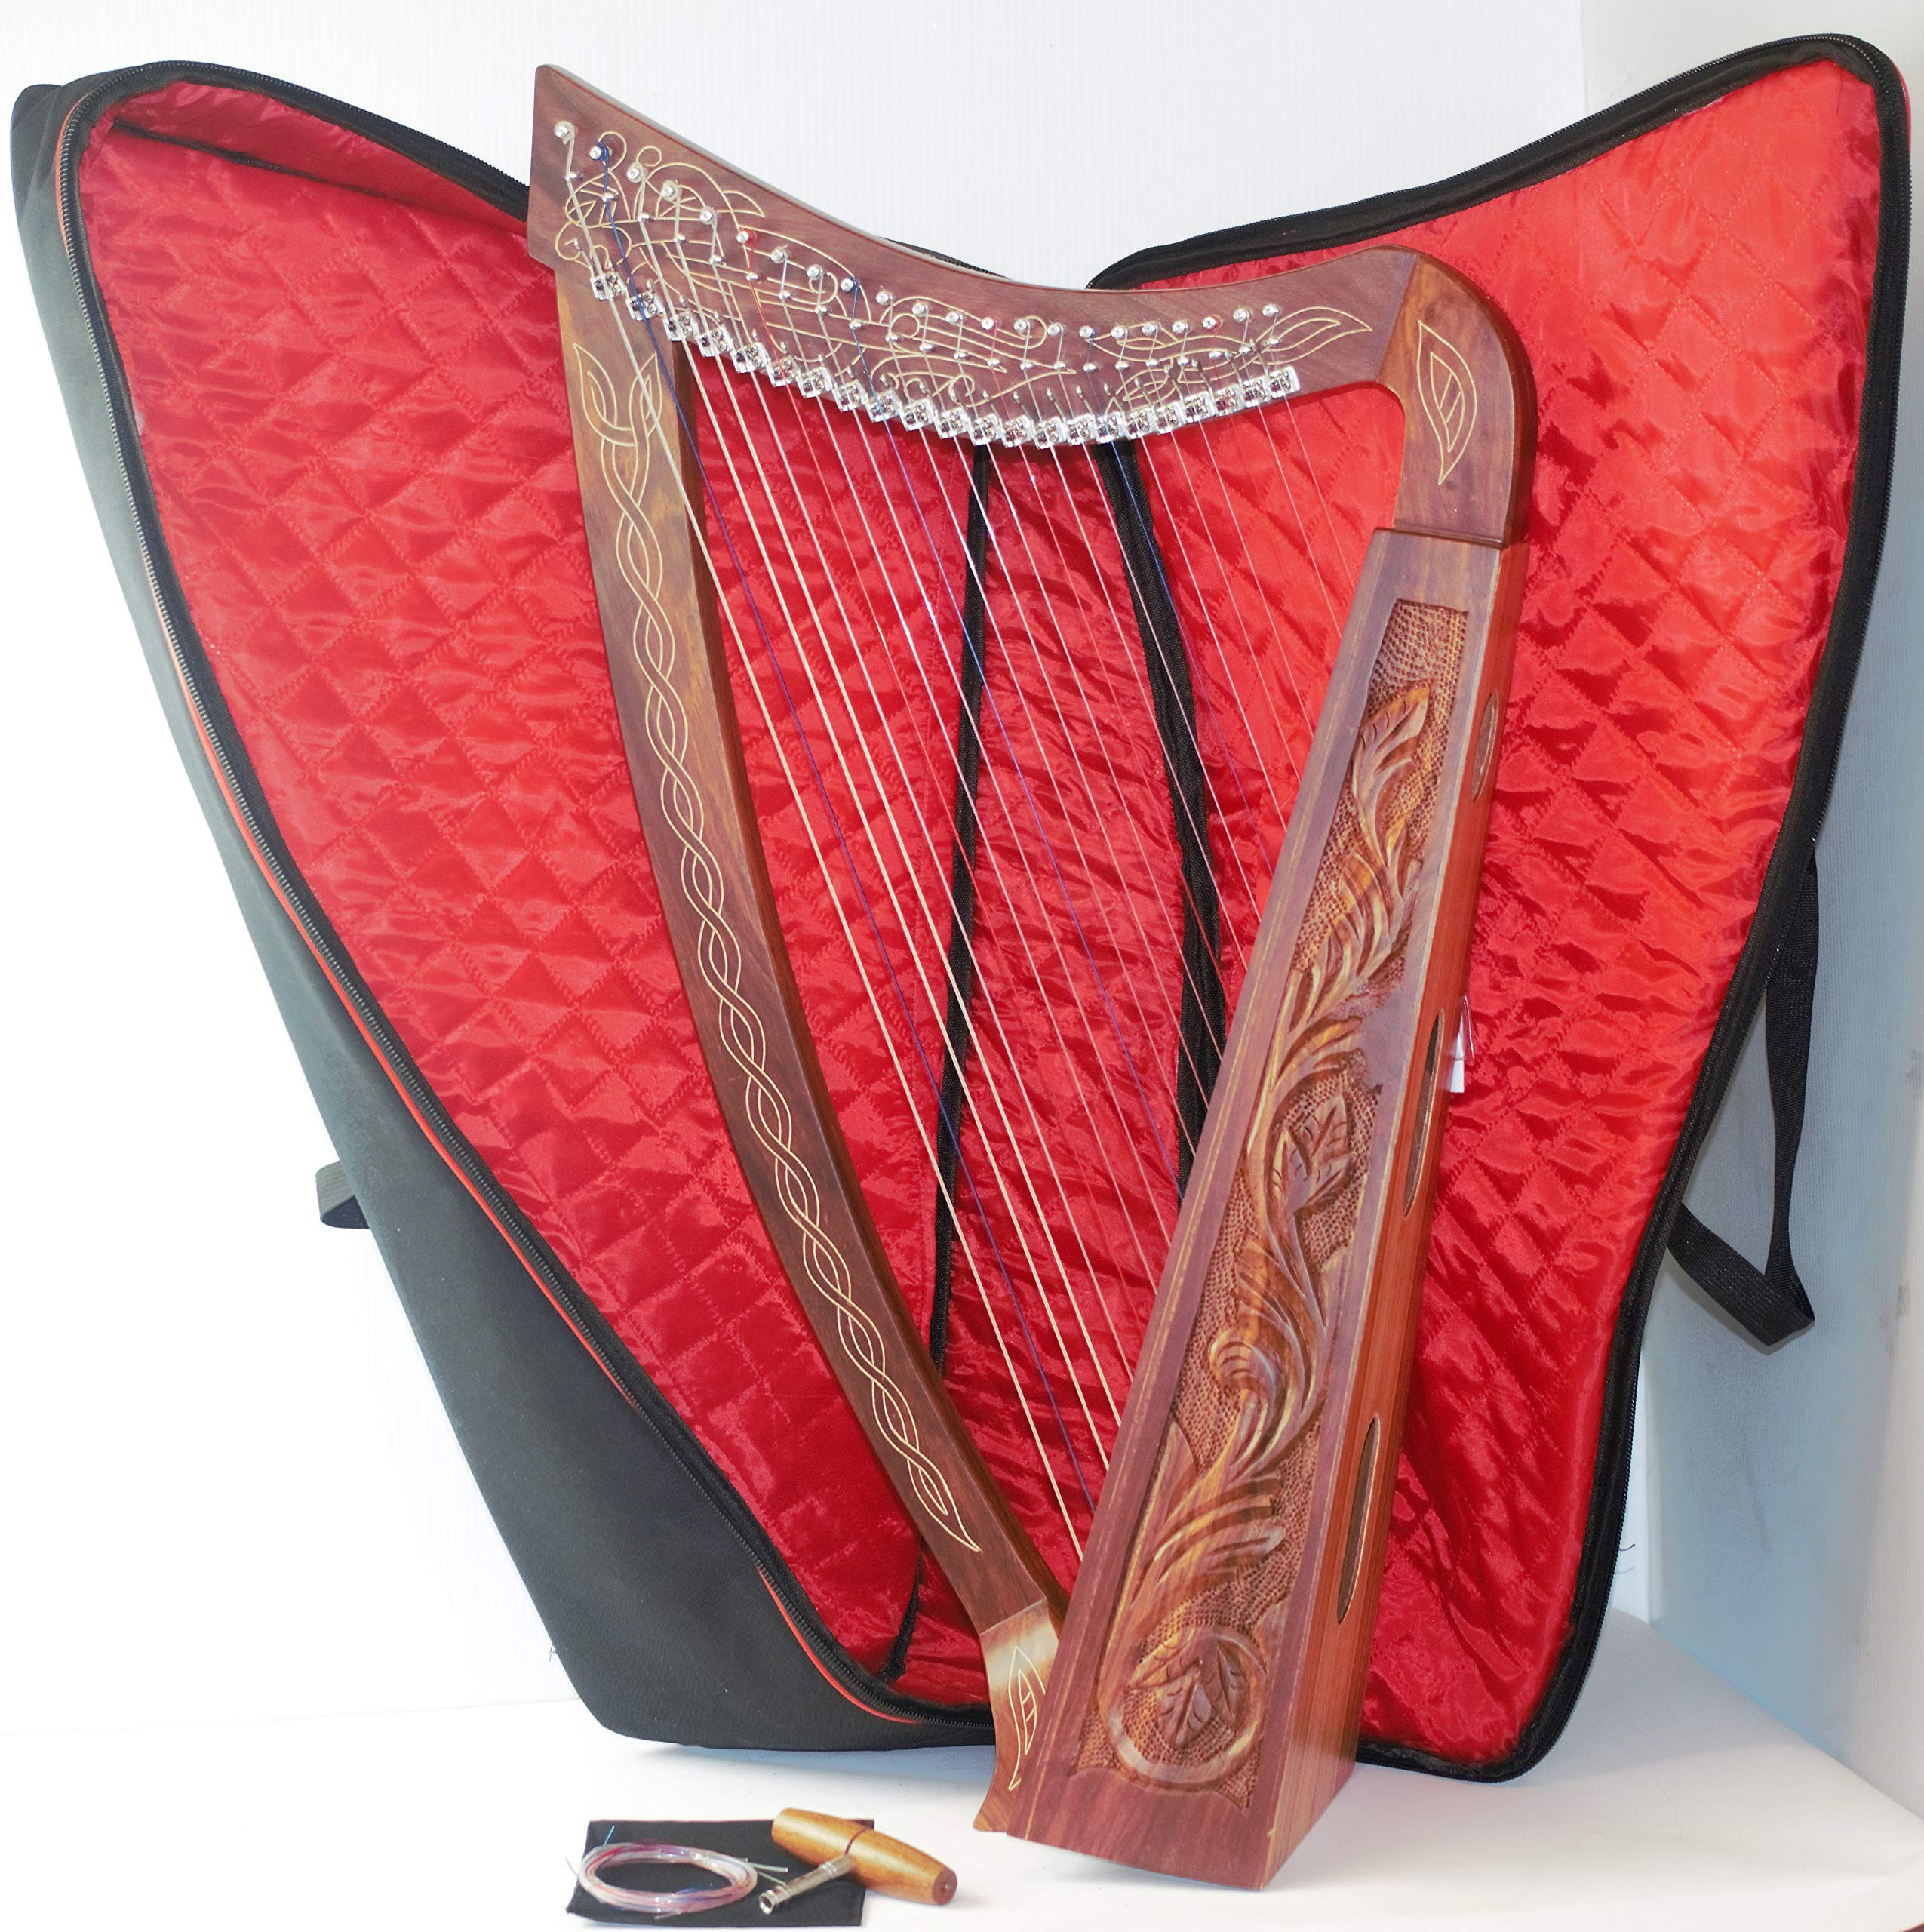 22 Nylon Strings Lever Harp Metal hardware Solid Wood with hand Engraved with Free Carrying Case by Sturgis